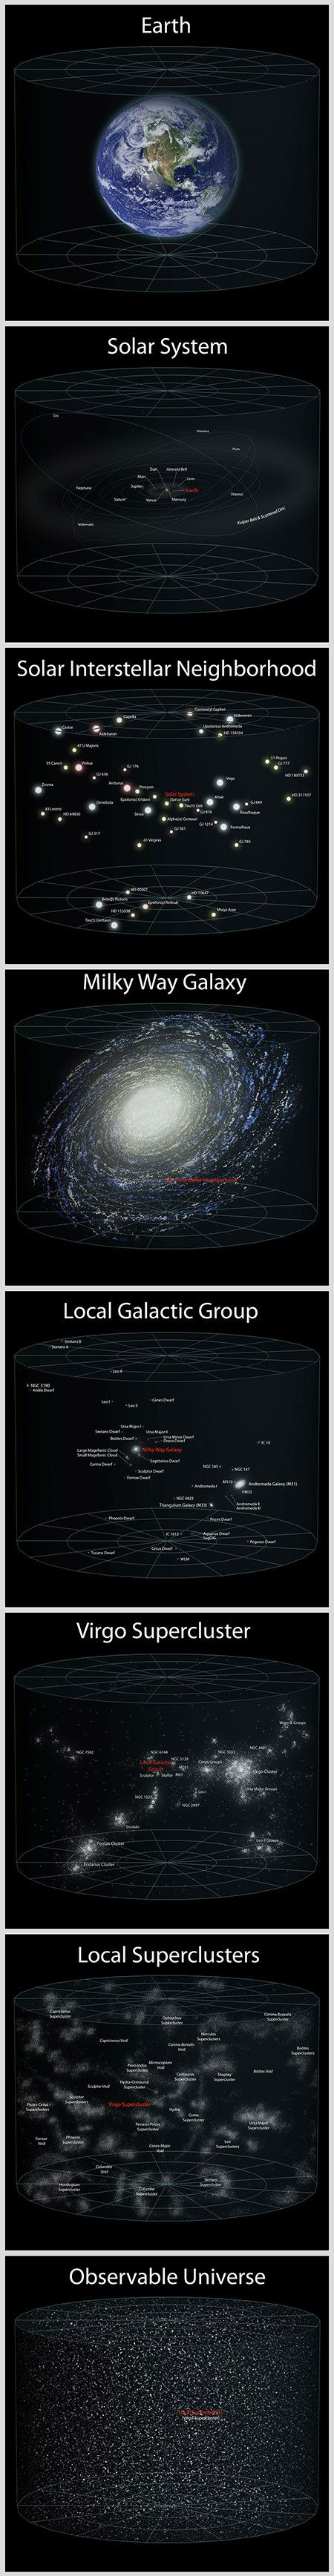 This is the Earth's location in the current observable universe.